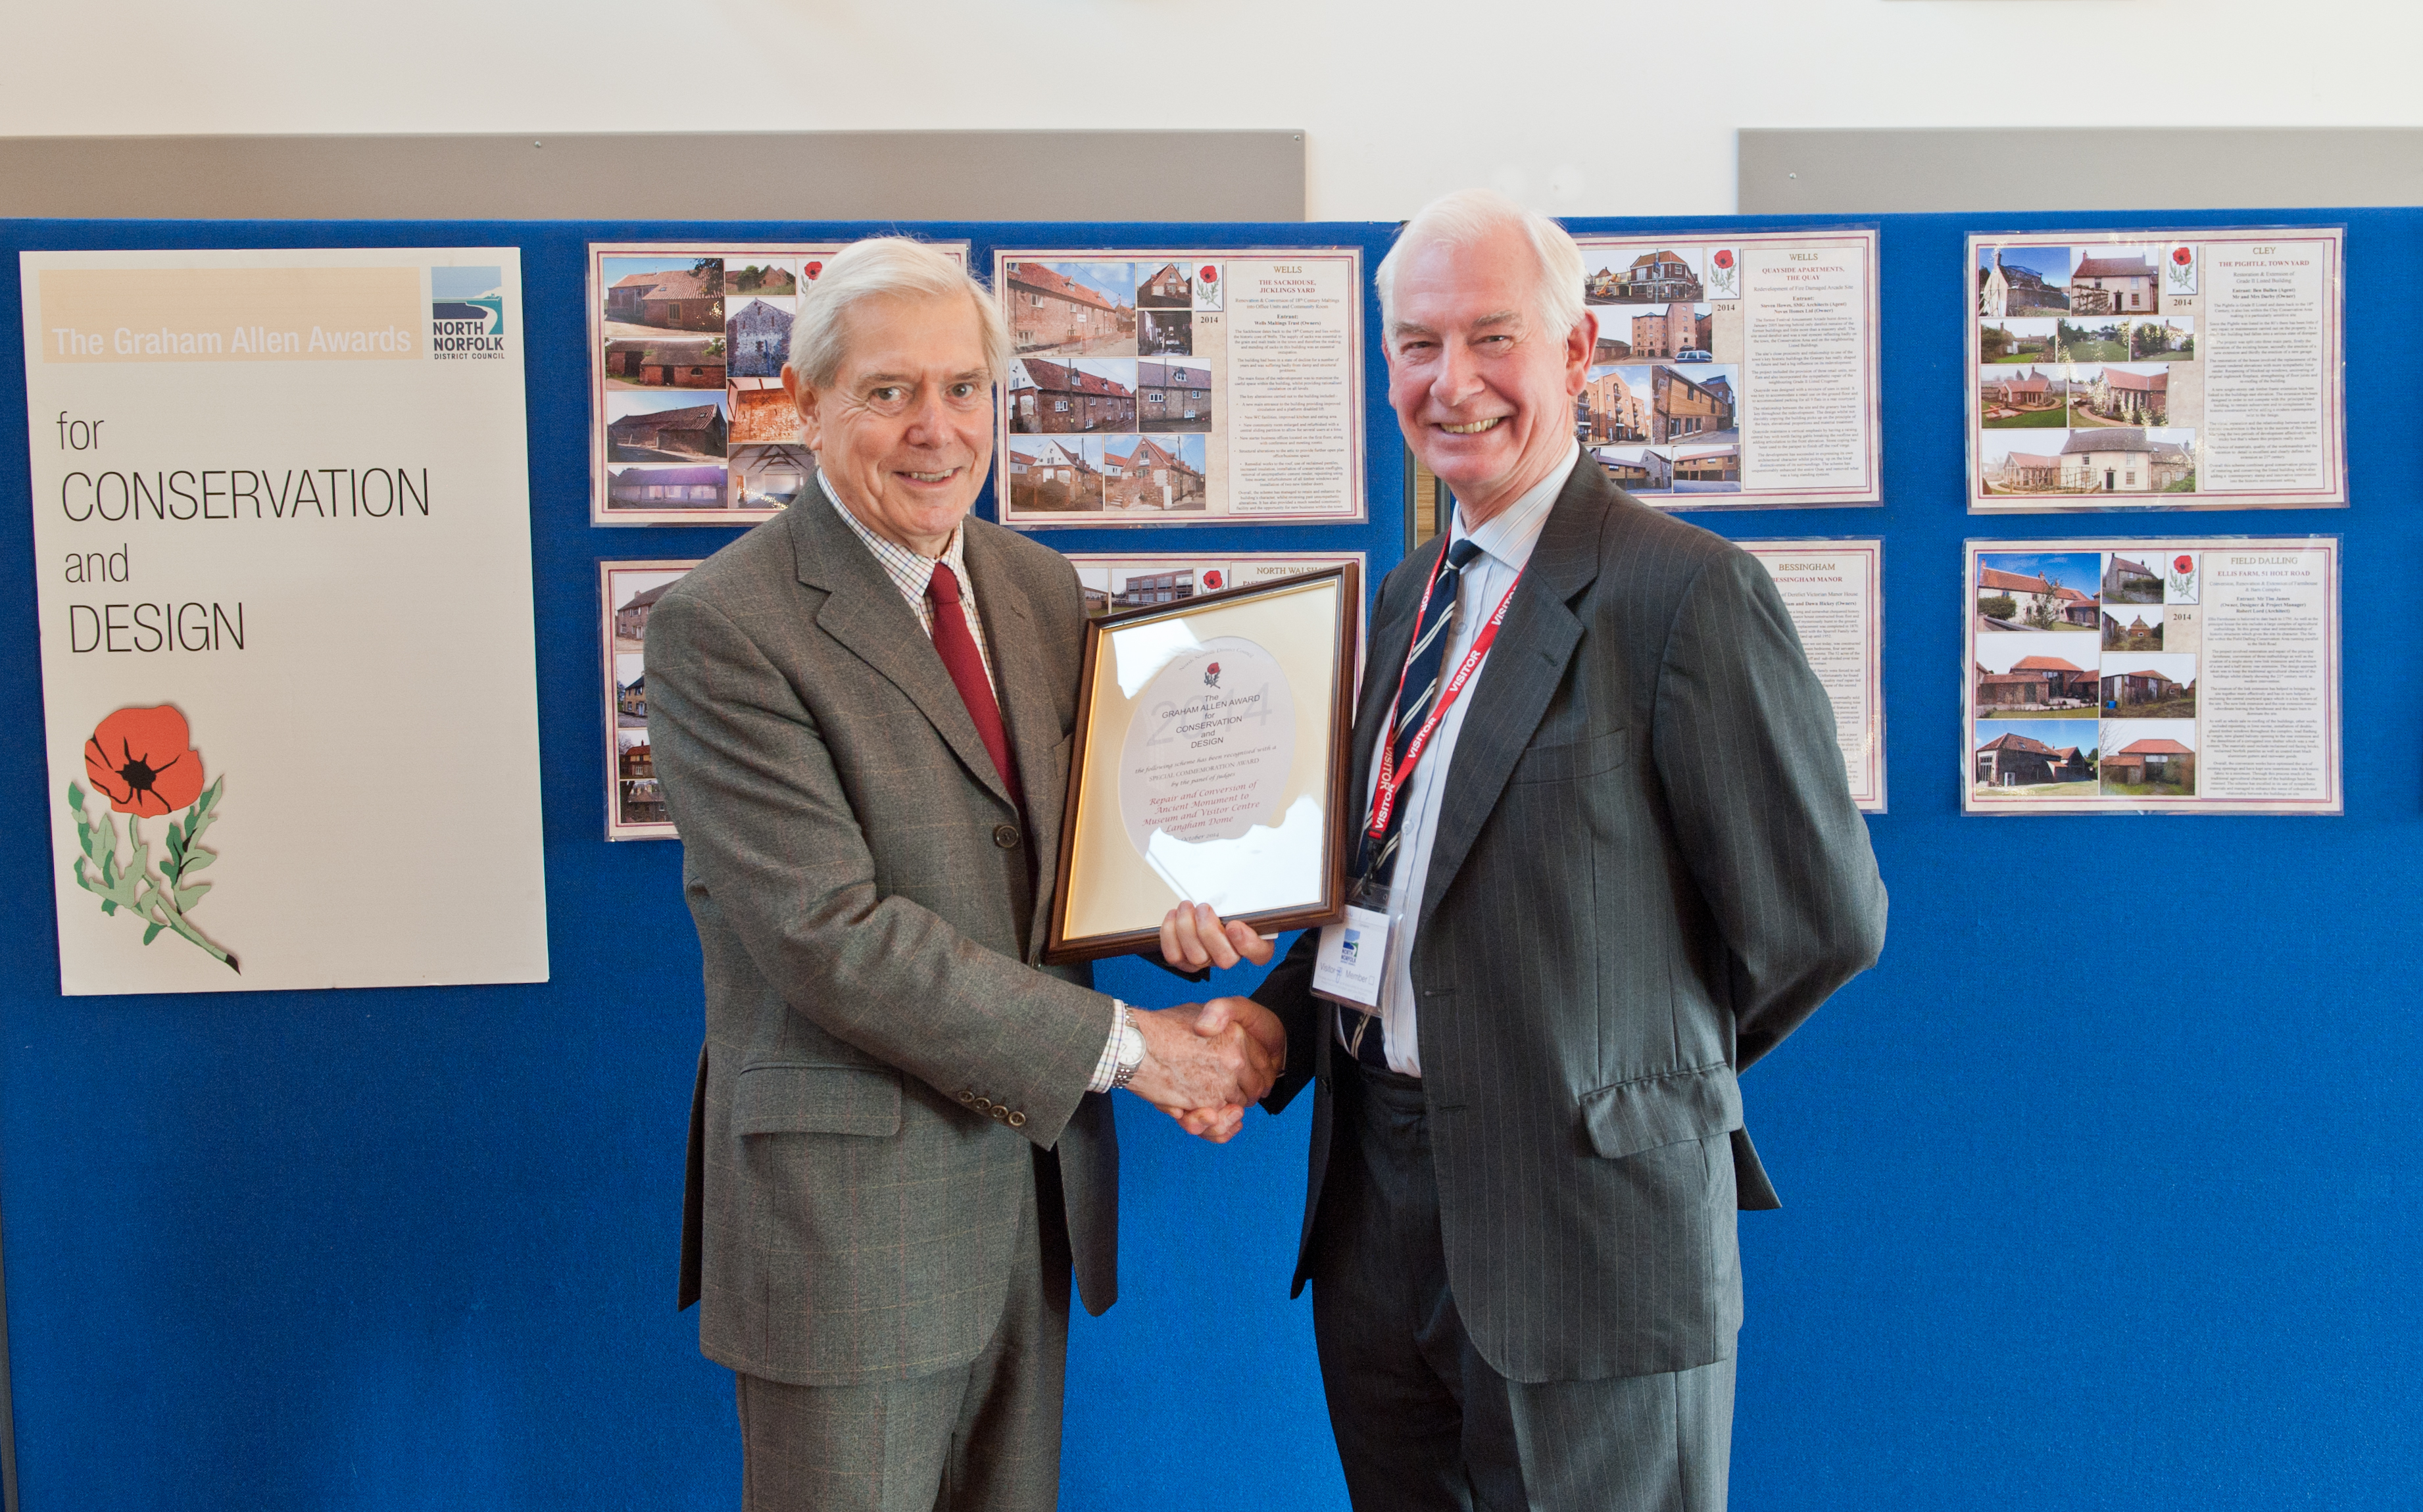 Malcolm Crowder (left) accepts the award on behalf of North Norfolk Historic Buildings Trust, from Edward Allen representing the Allen family